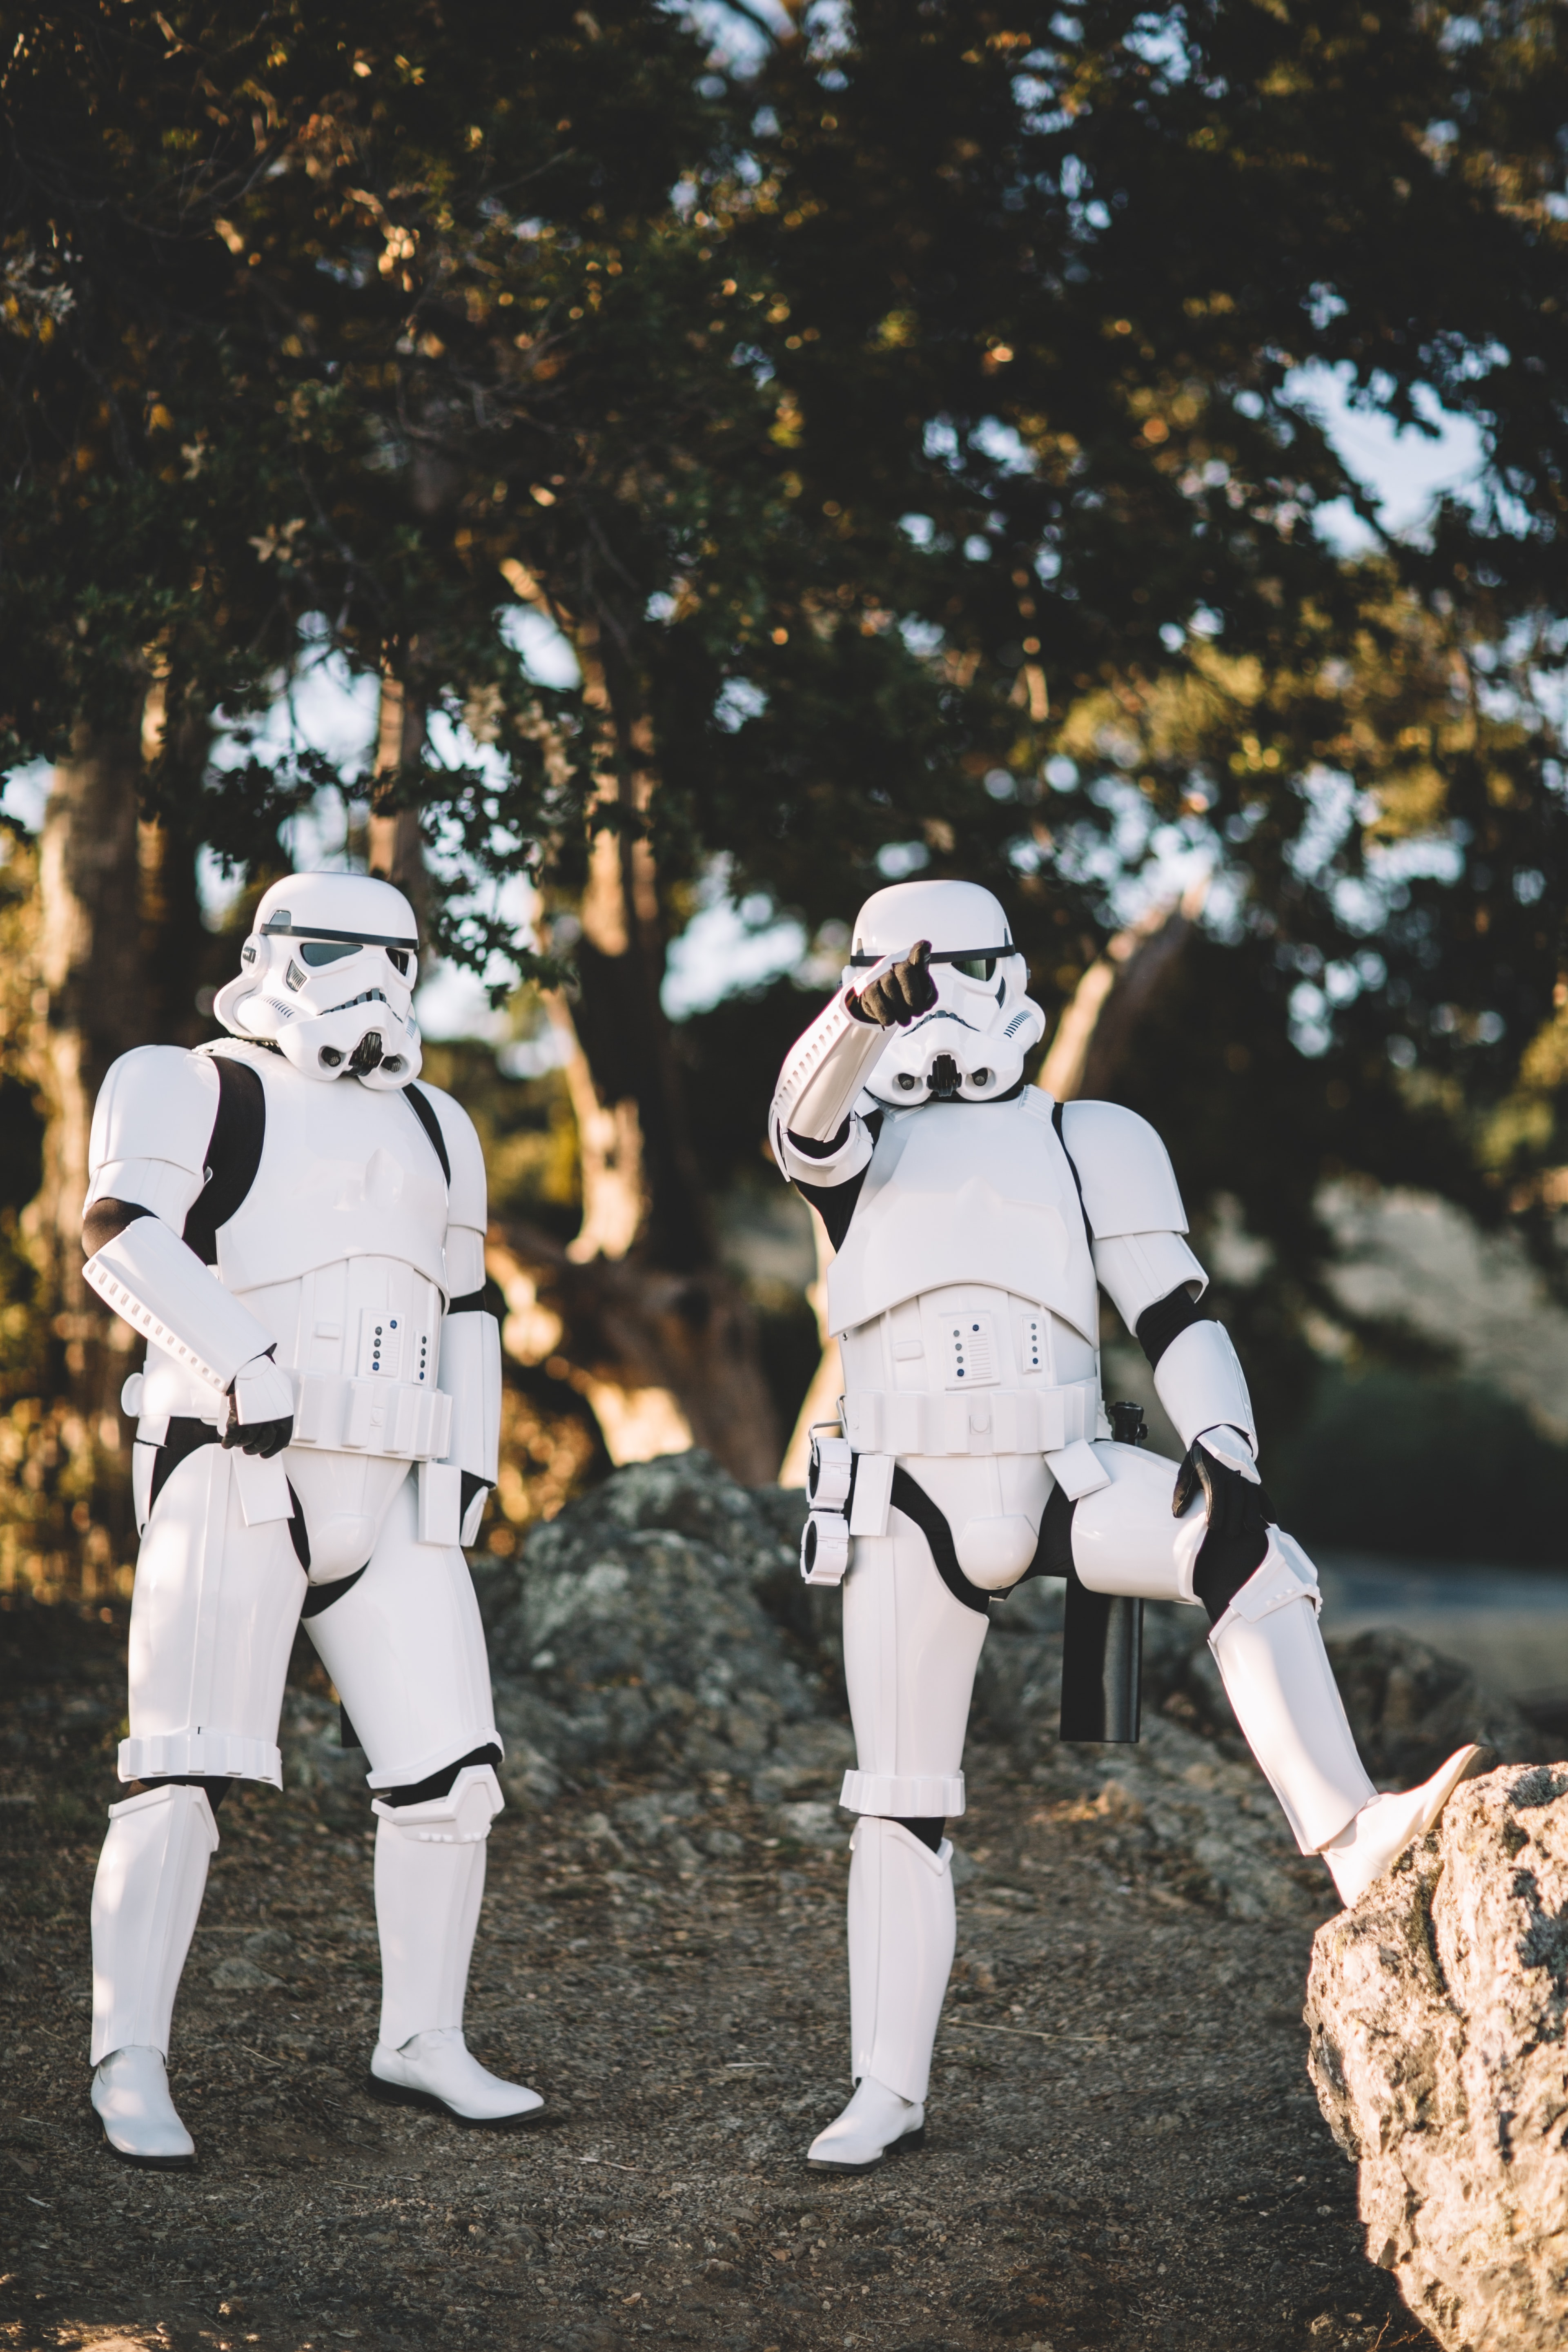 two Star Wars Stormtrooper action figures on gray surface outdoors